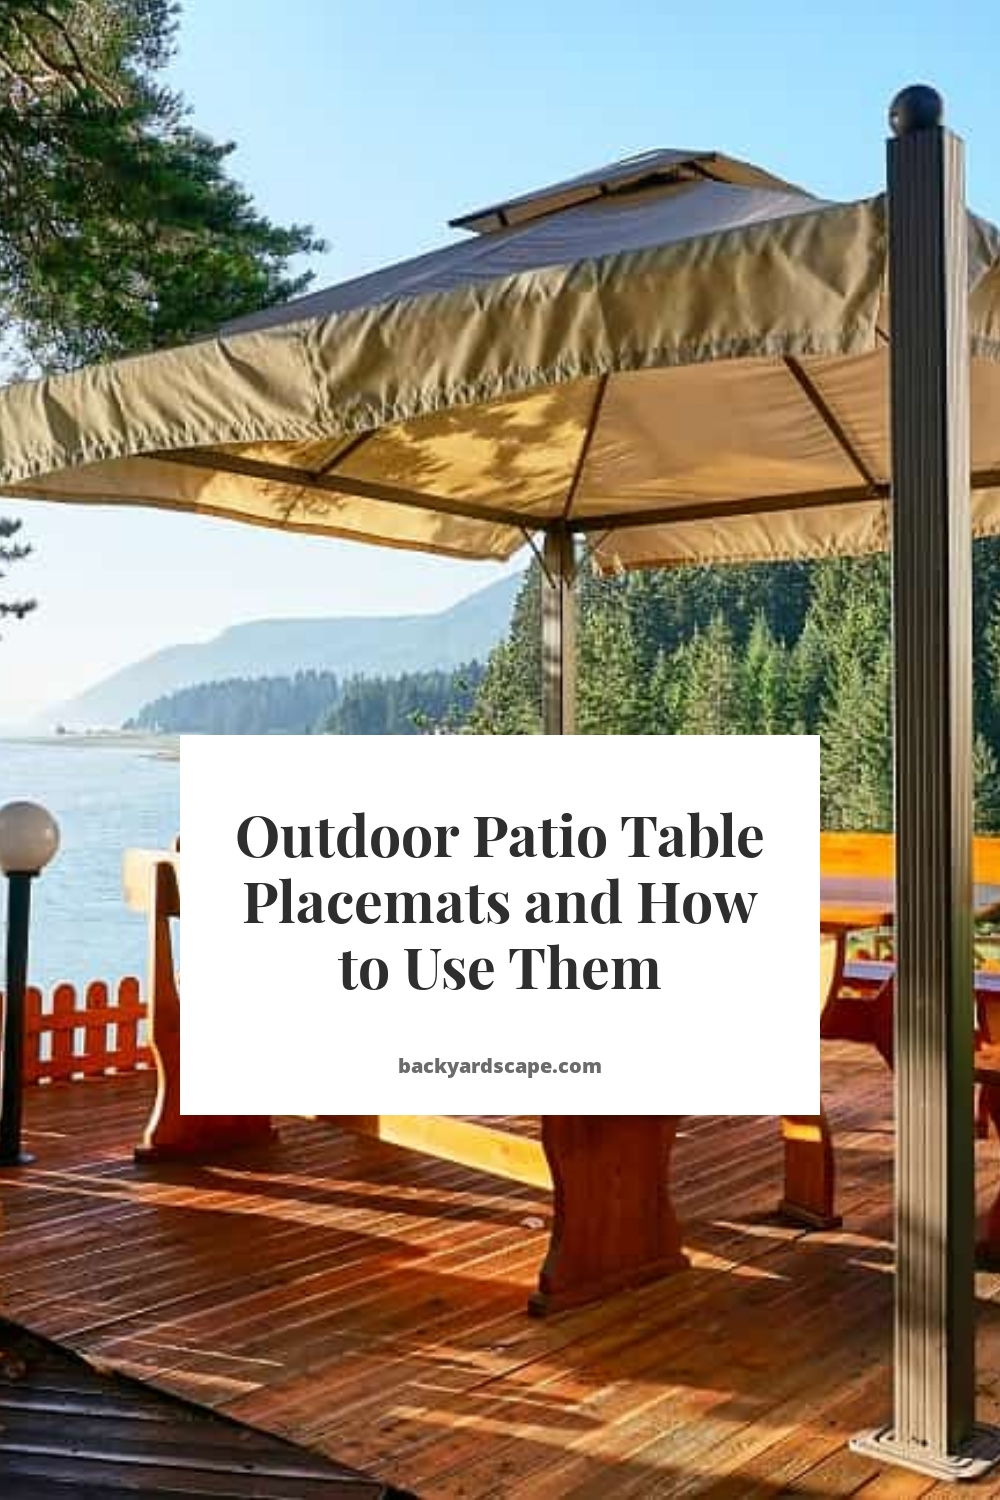 Outdoor Patio Table Placemats and How to Use Them